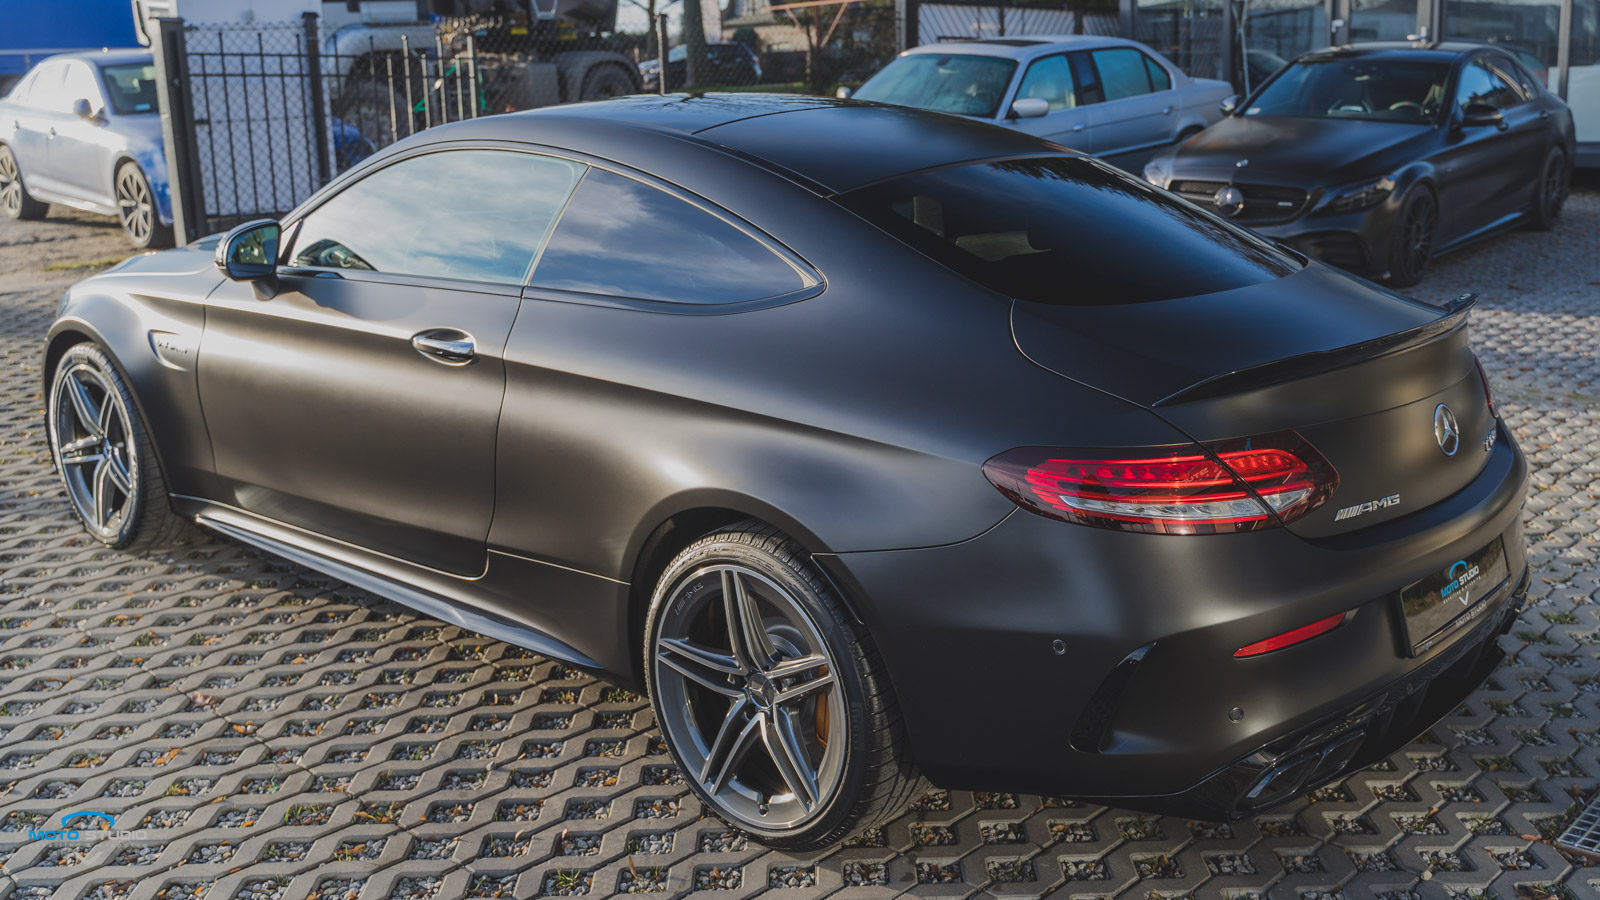 Mercedes-Benz C63s AMG Coupe